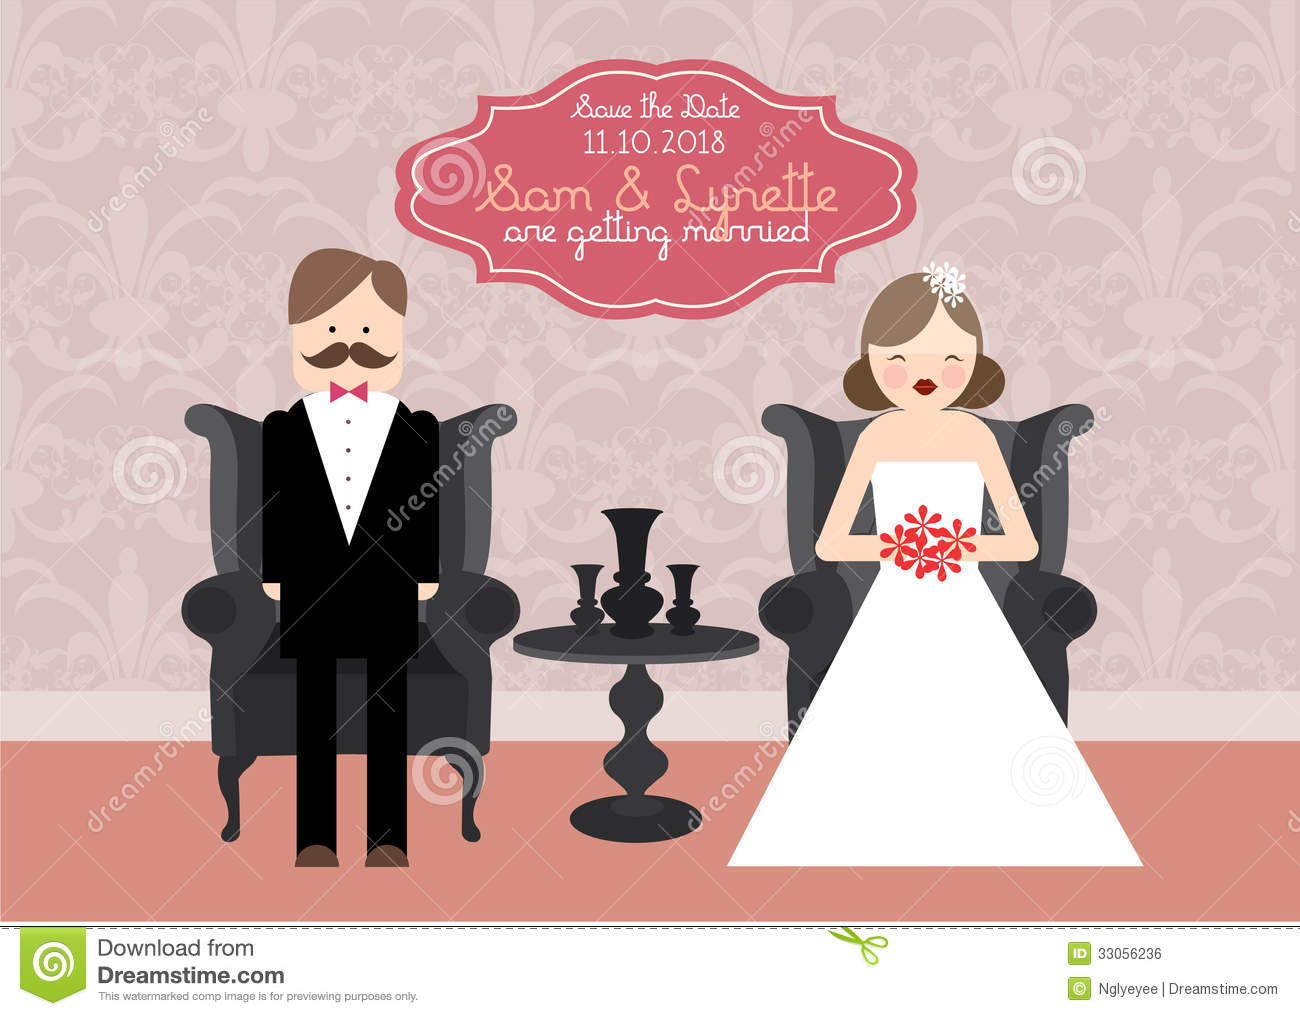 Wedding Invitation Templates Illustrator Download Free – Free Wedding Invitation Cards Templates